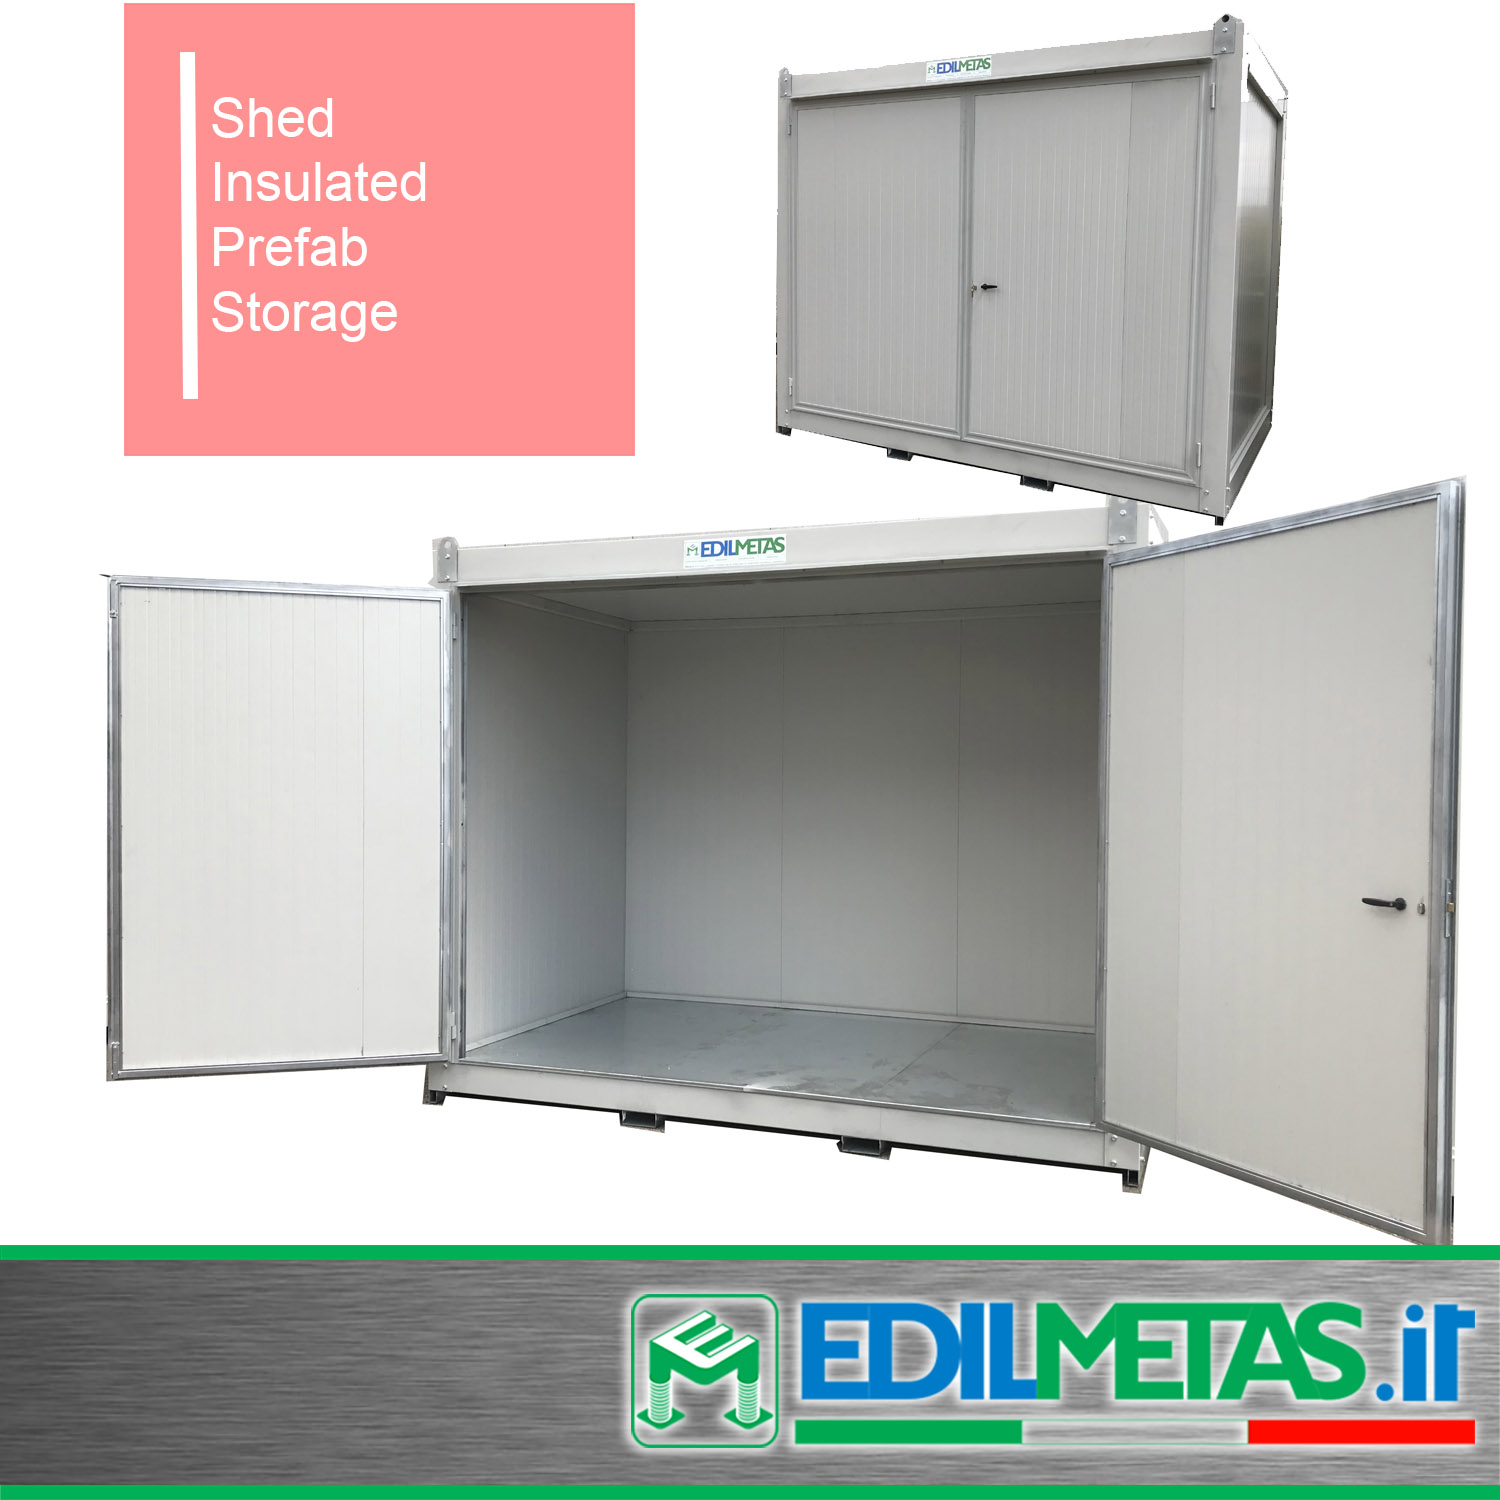 Flat pack storage unit